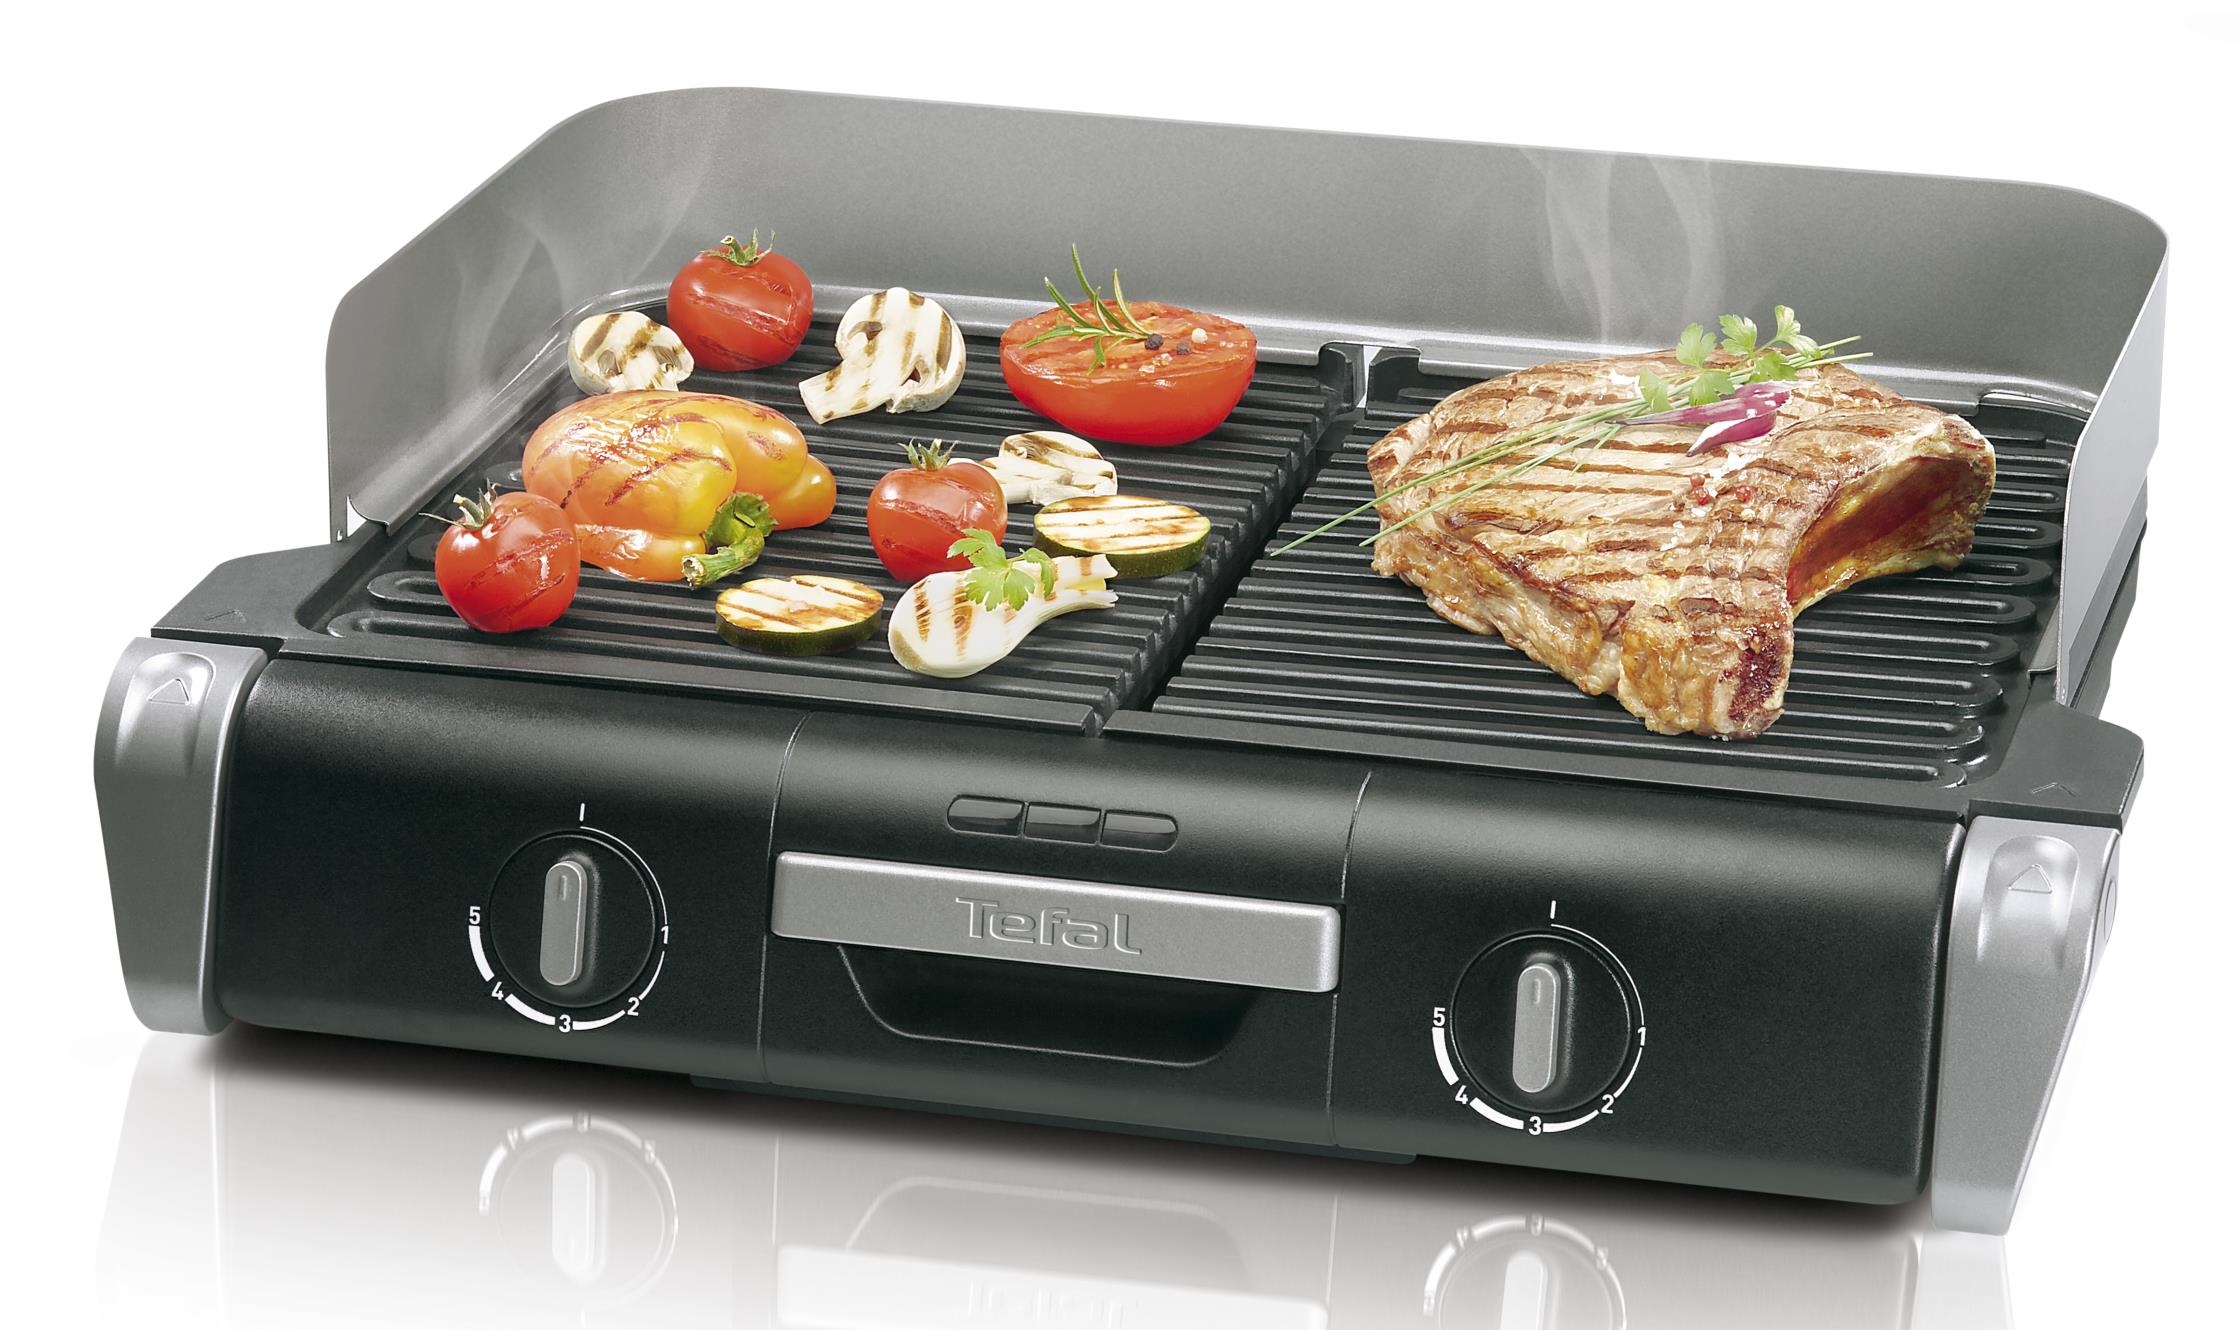 Tefal TG8000 Family Flavor grillplaat